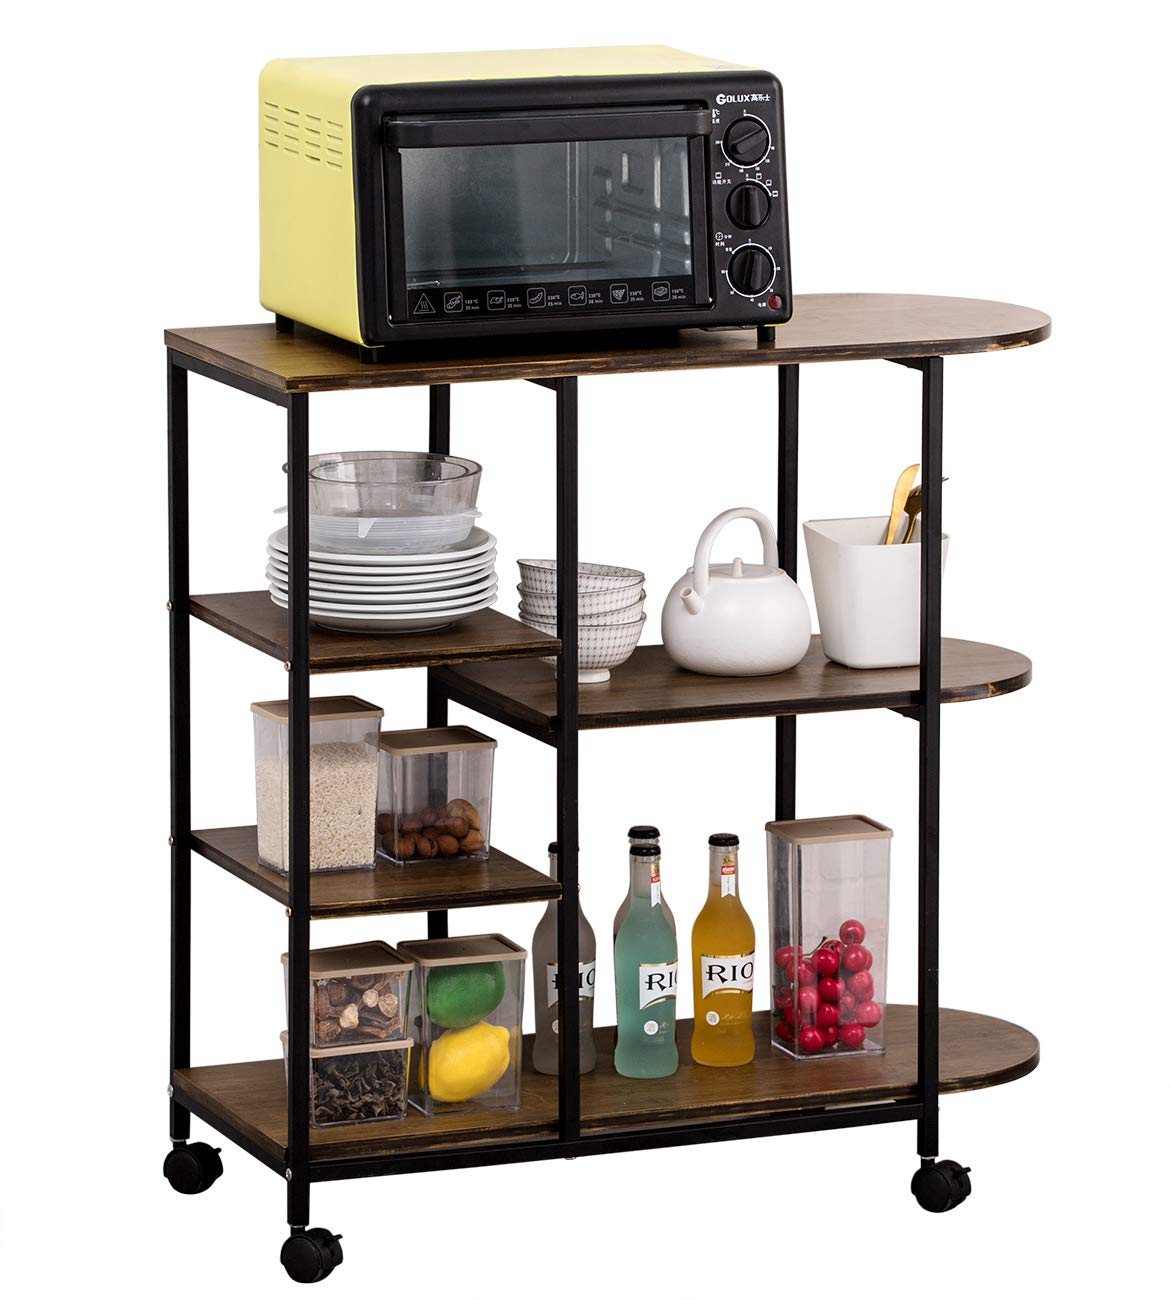 COPREE Rolling Wood Kitchen Island Trolley Utility Cart 3-Tier+3-Tier Microwave Oven Baker's Rack Stand Home Organizer Storage Shelf